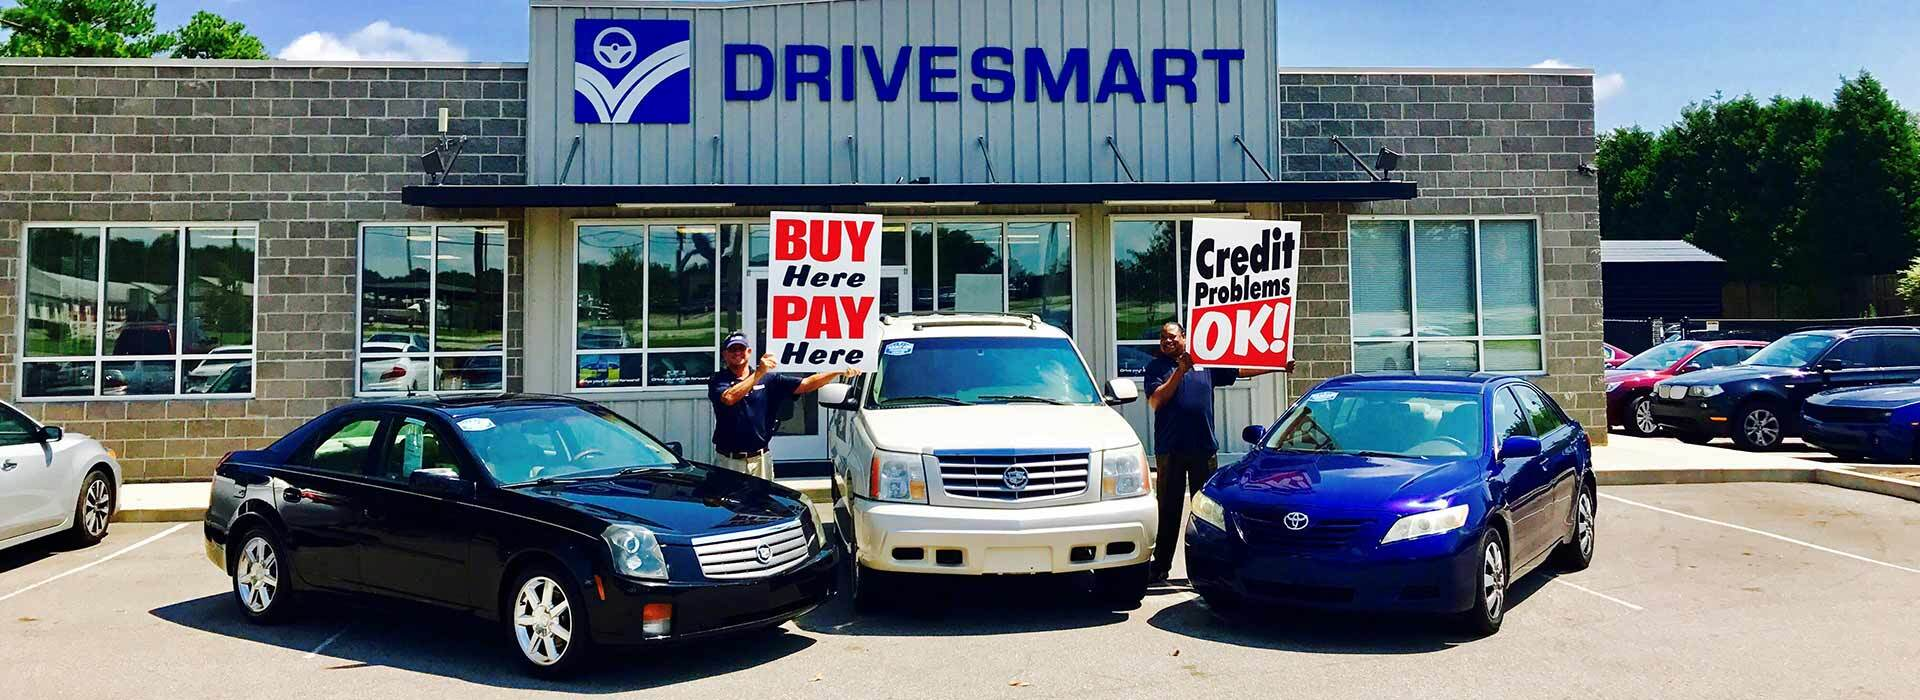 DriveSmart Dealership